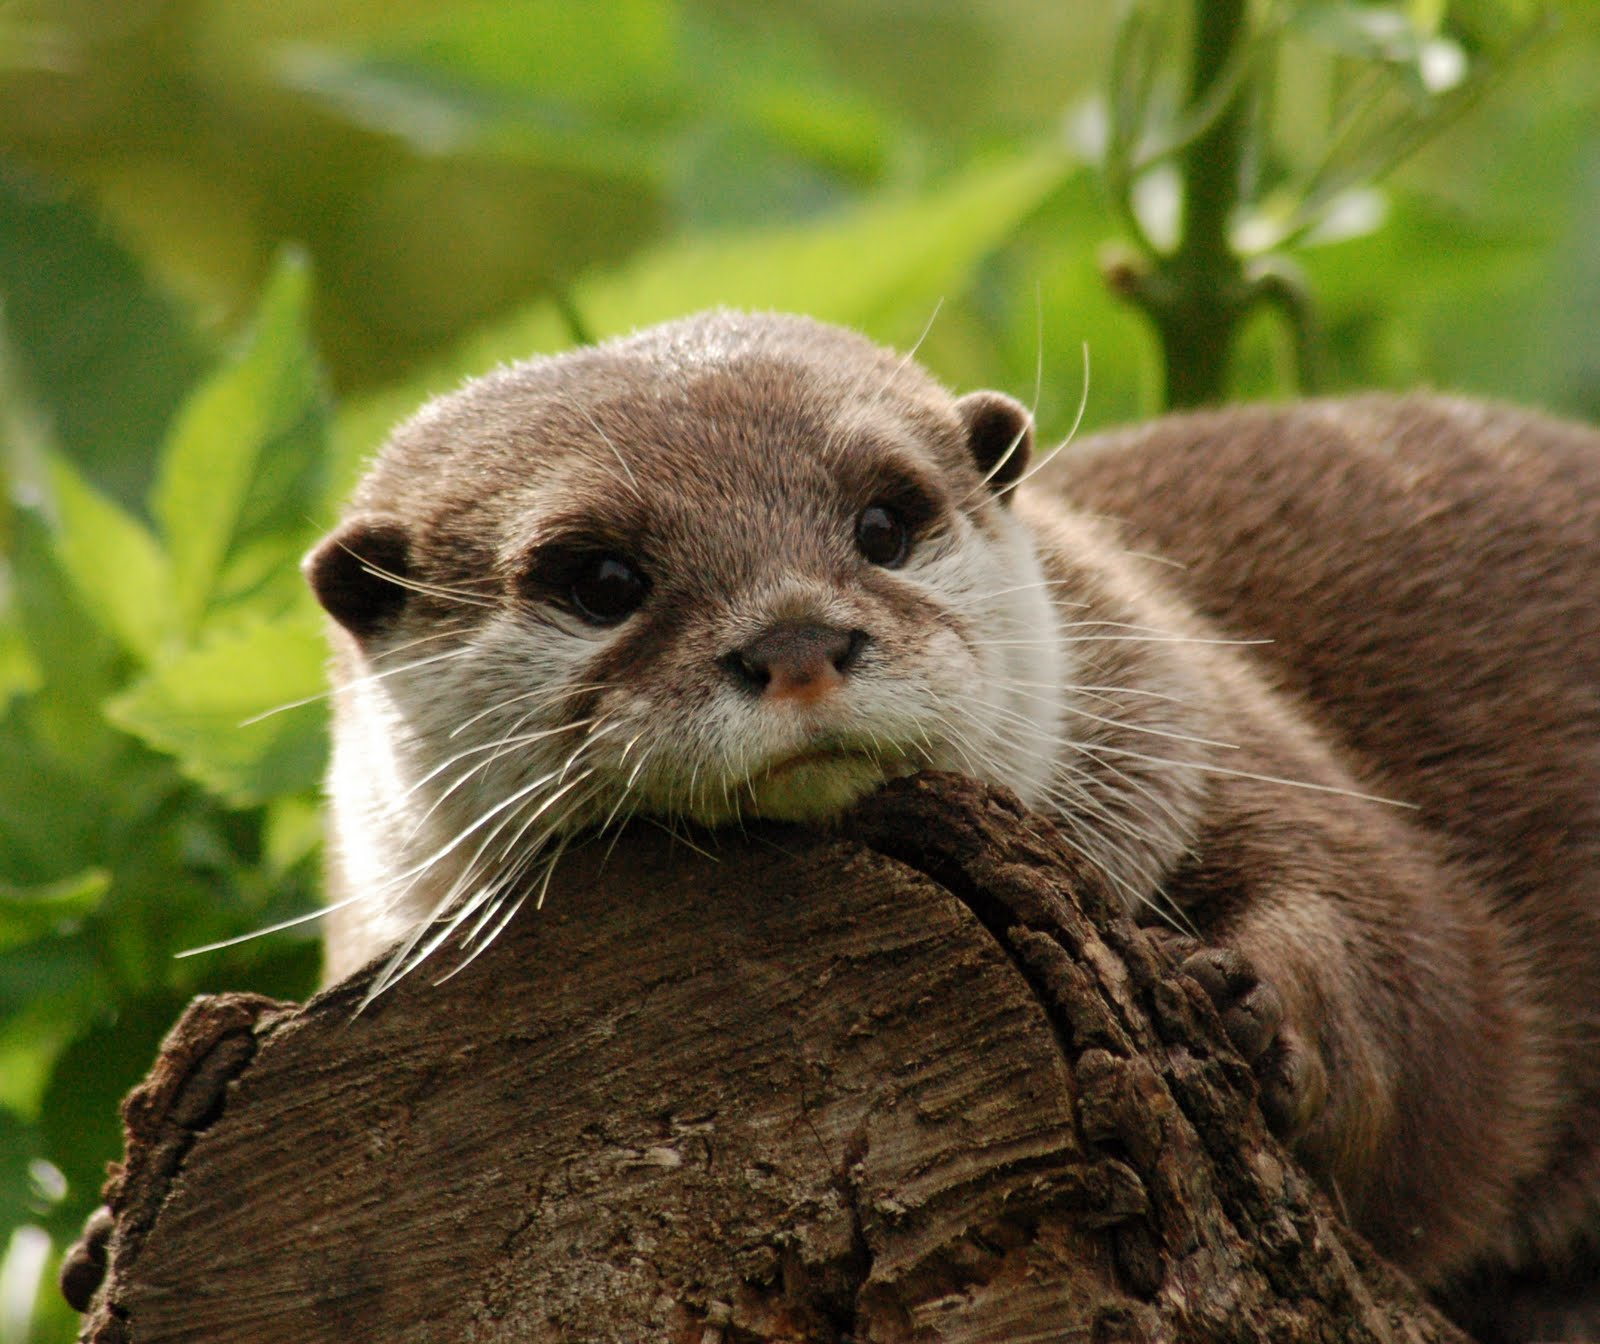 oriental small clawed otter The asian small-clawed otter is the smallest otter in the world when fully grown, these otters measure approximately 09m from nose to tail tip and weigh up to 5kg, compared to a giant otter which can reach lengths of up to 17 meters.